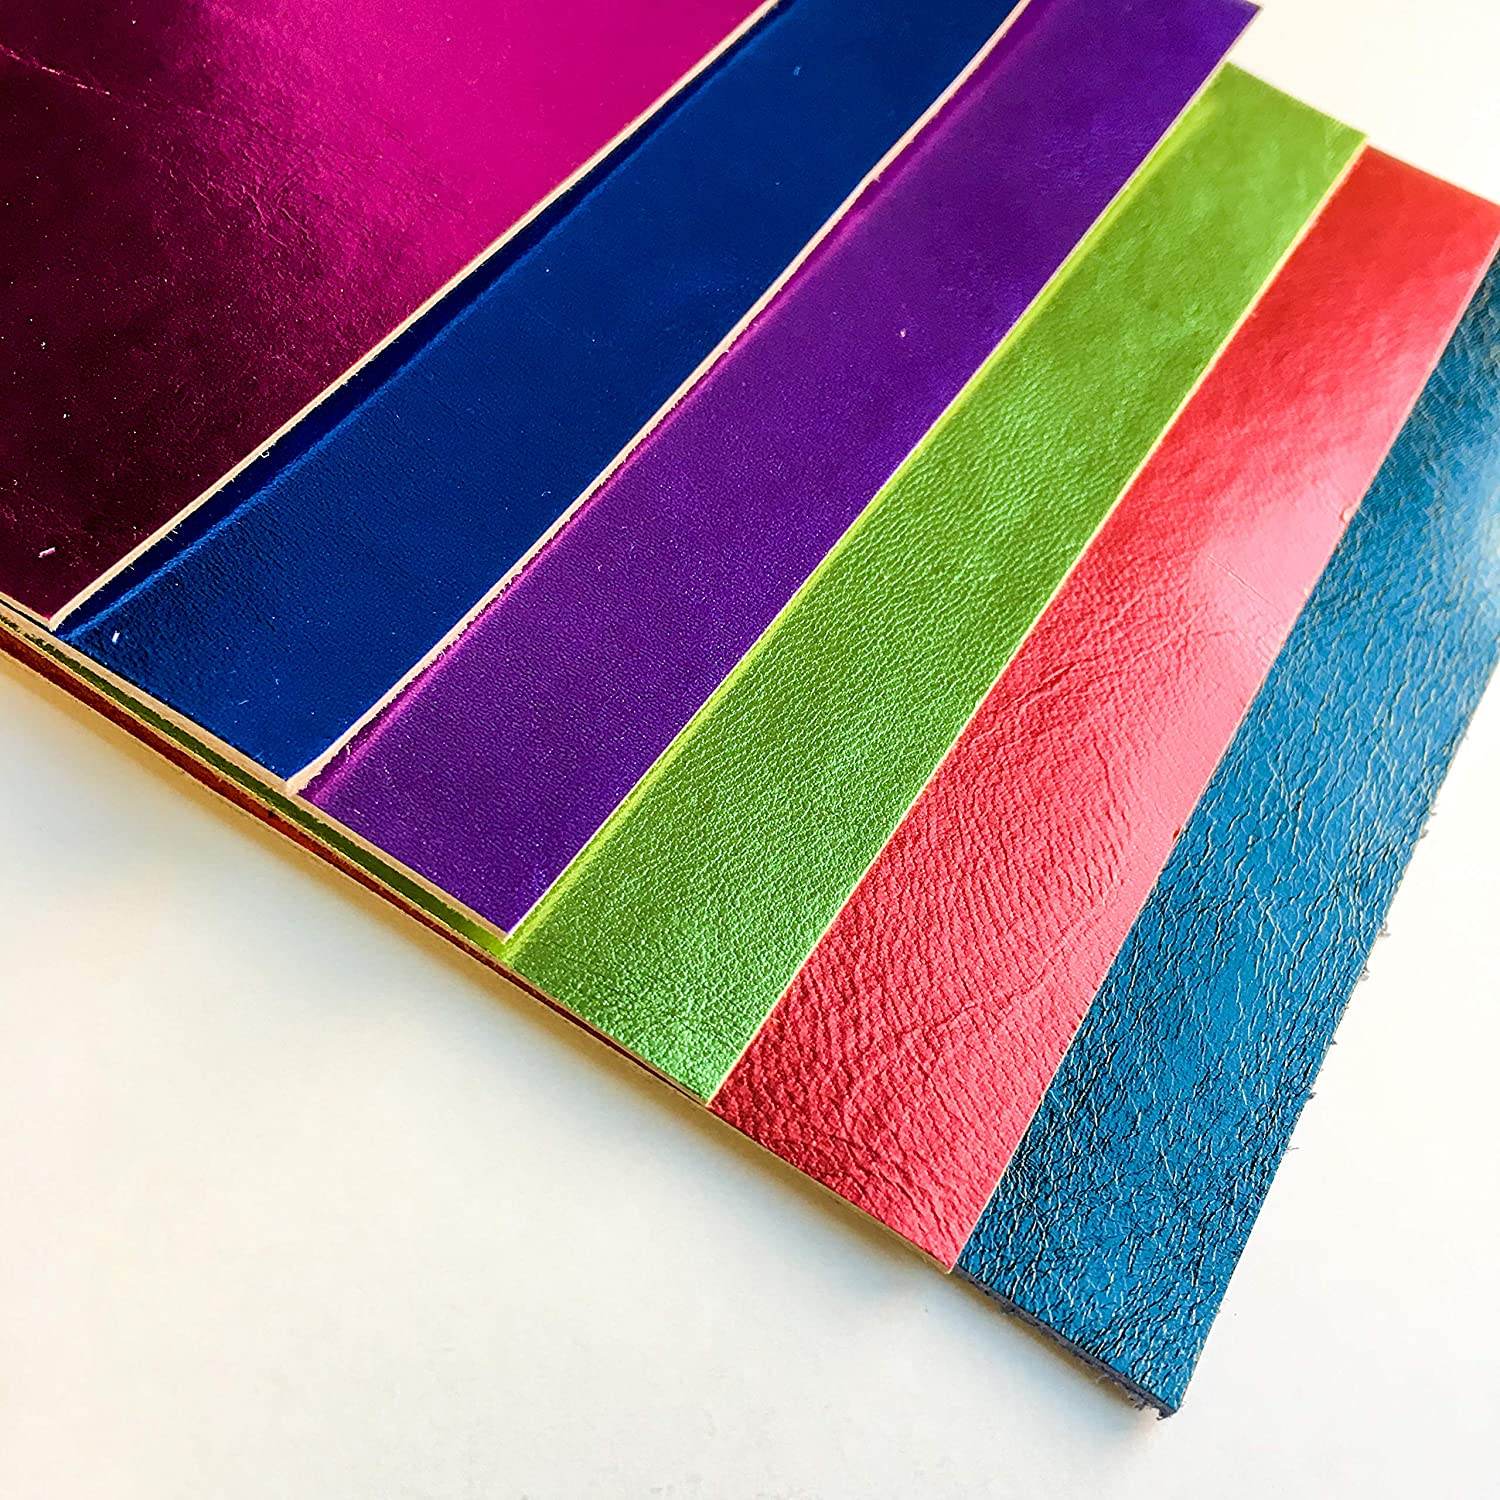 Multicolored Genuine Leather for Crafts Christmas Mix 6 Sheepskin Sheets of 5x5 Inches Large Skin